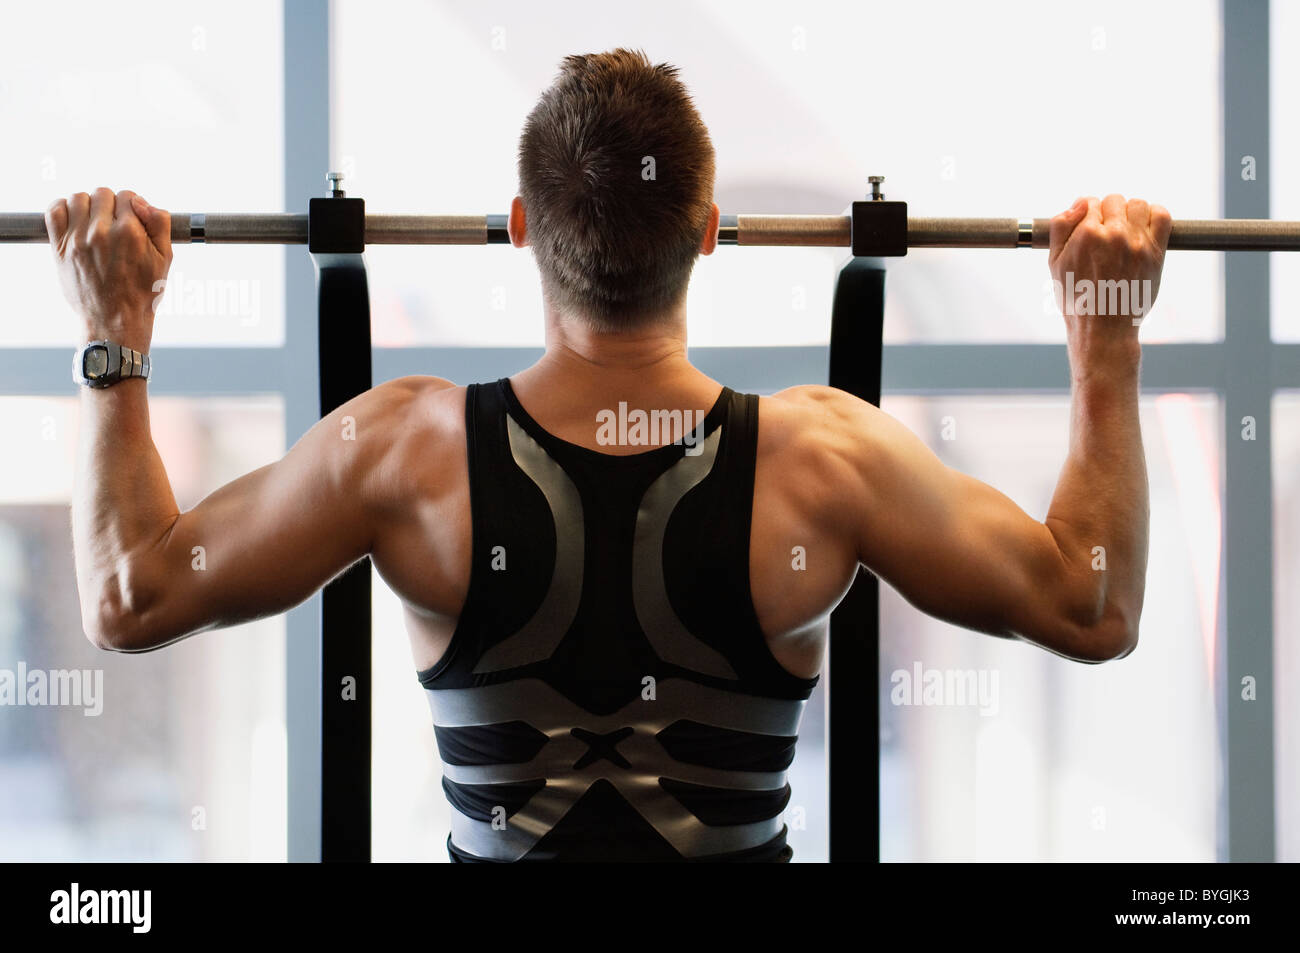 Male athlete doing pull ups in gym - Stock Image